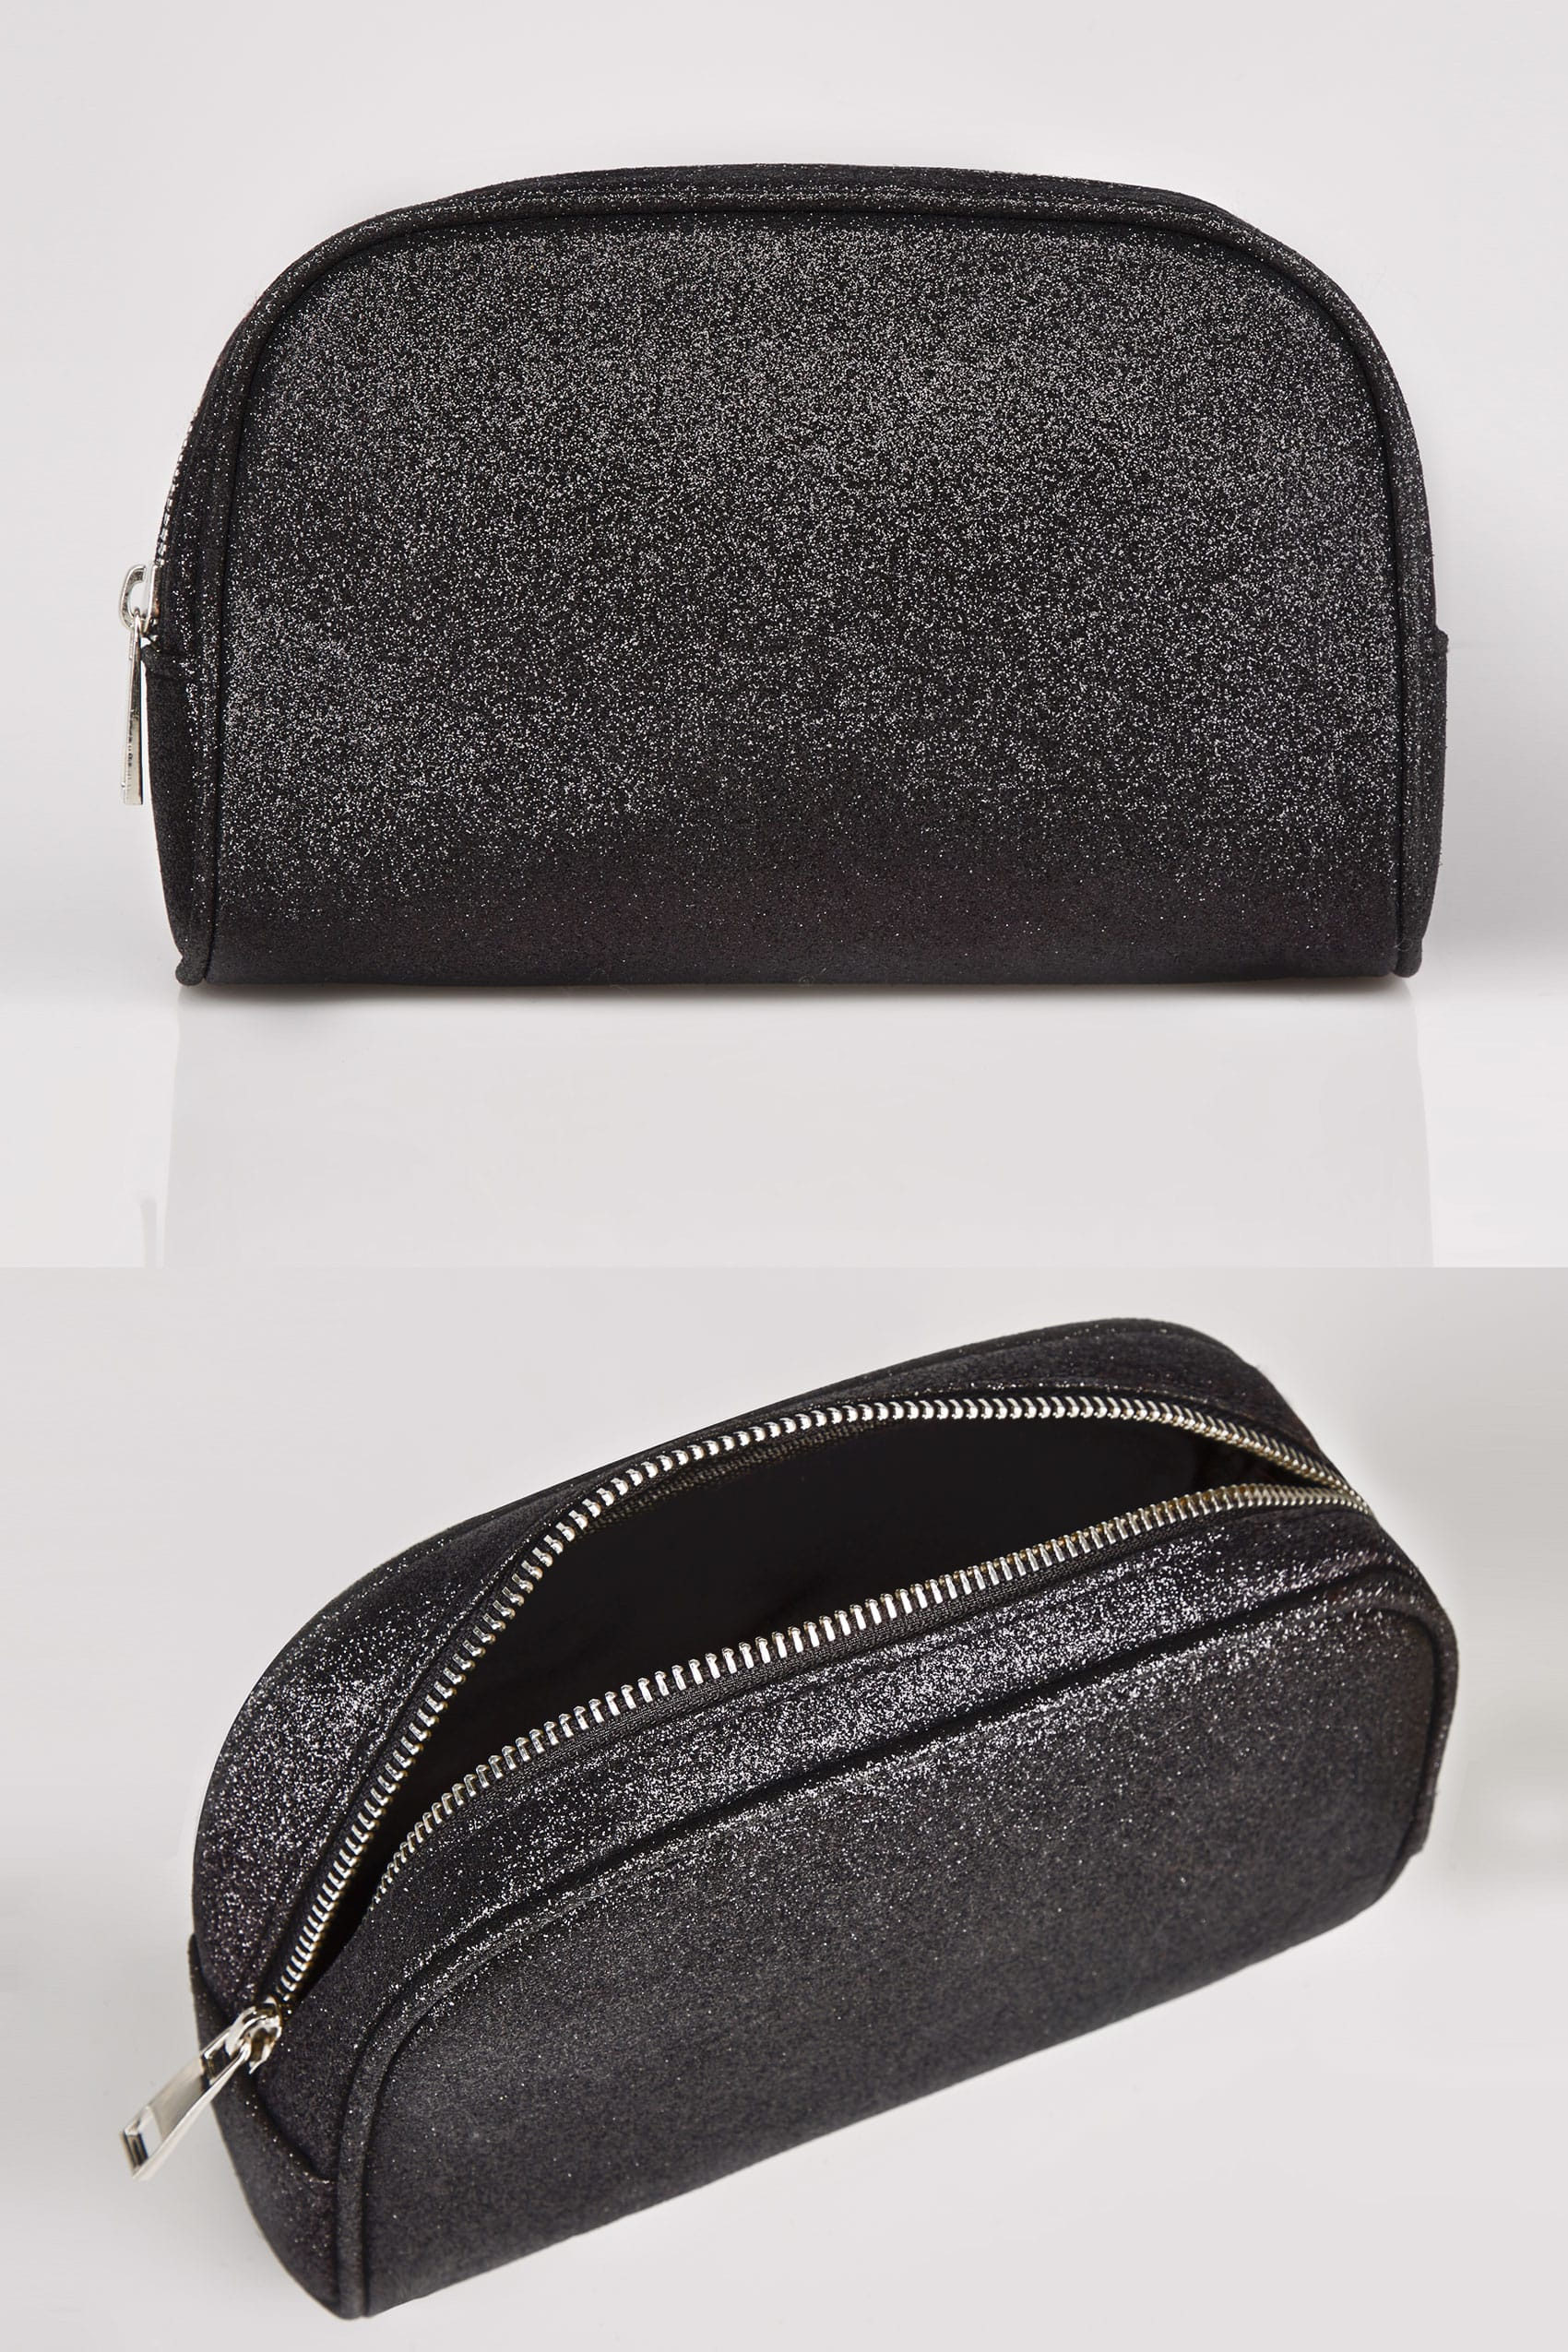 black oval glitter make up bag with zip top. Black Bedroom Furniture Sets. Home Design Ideas